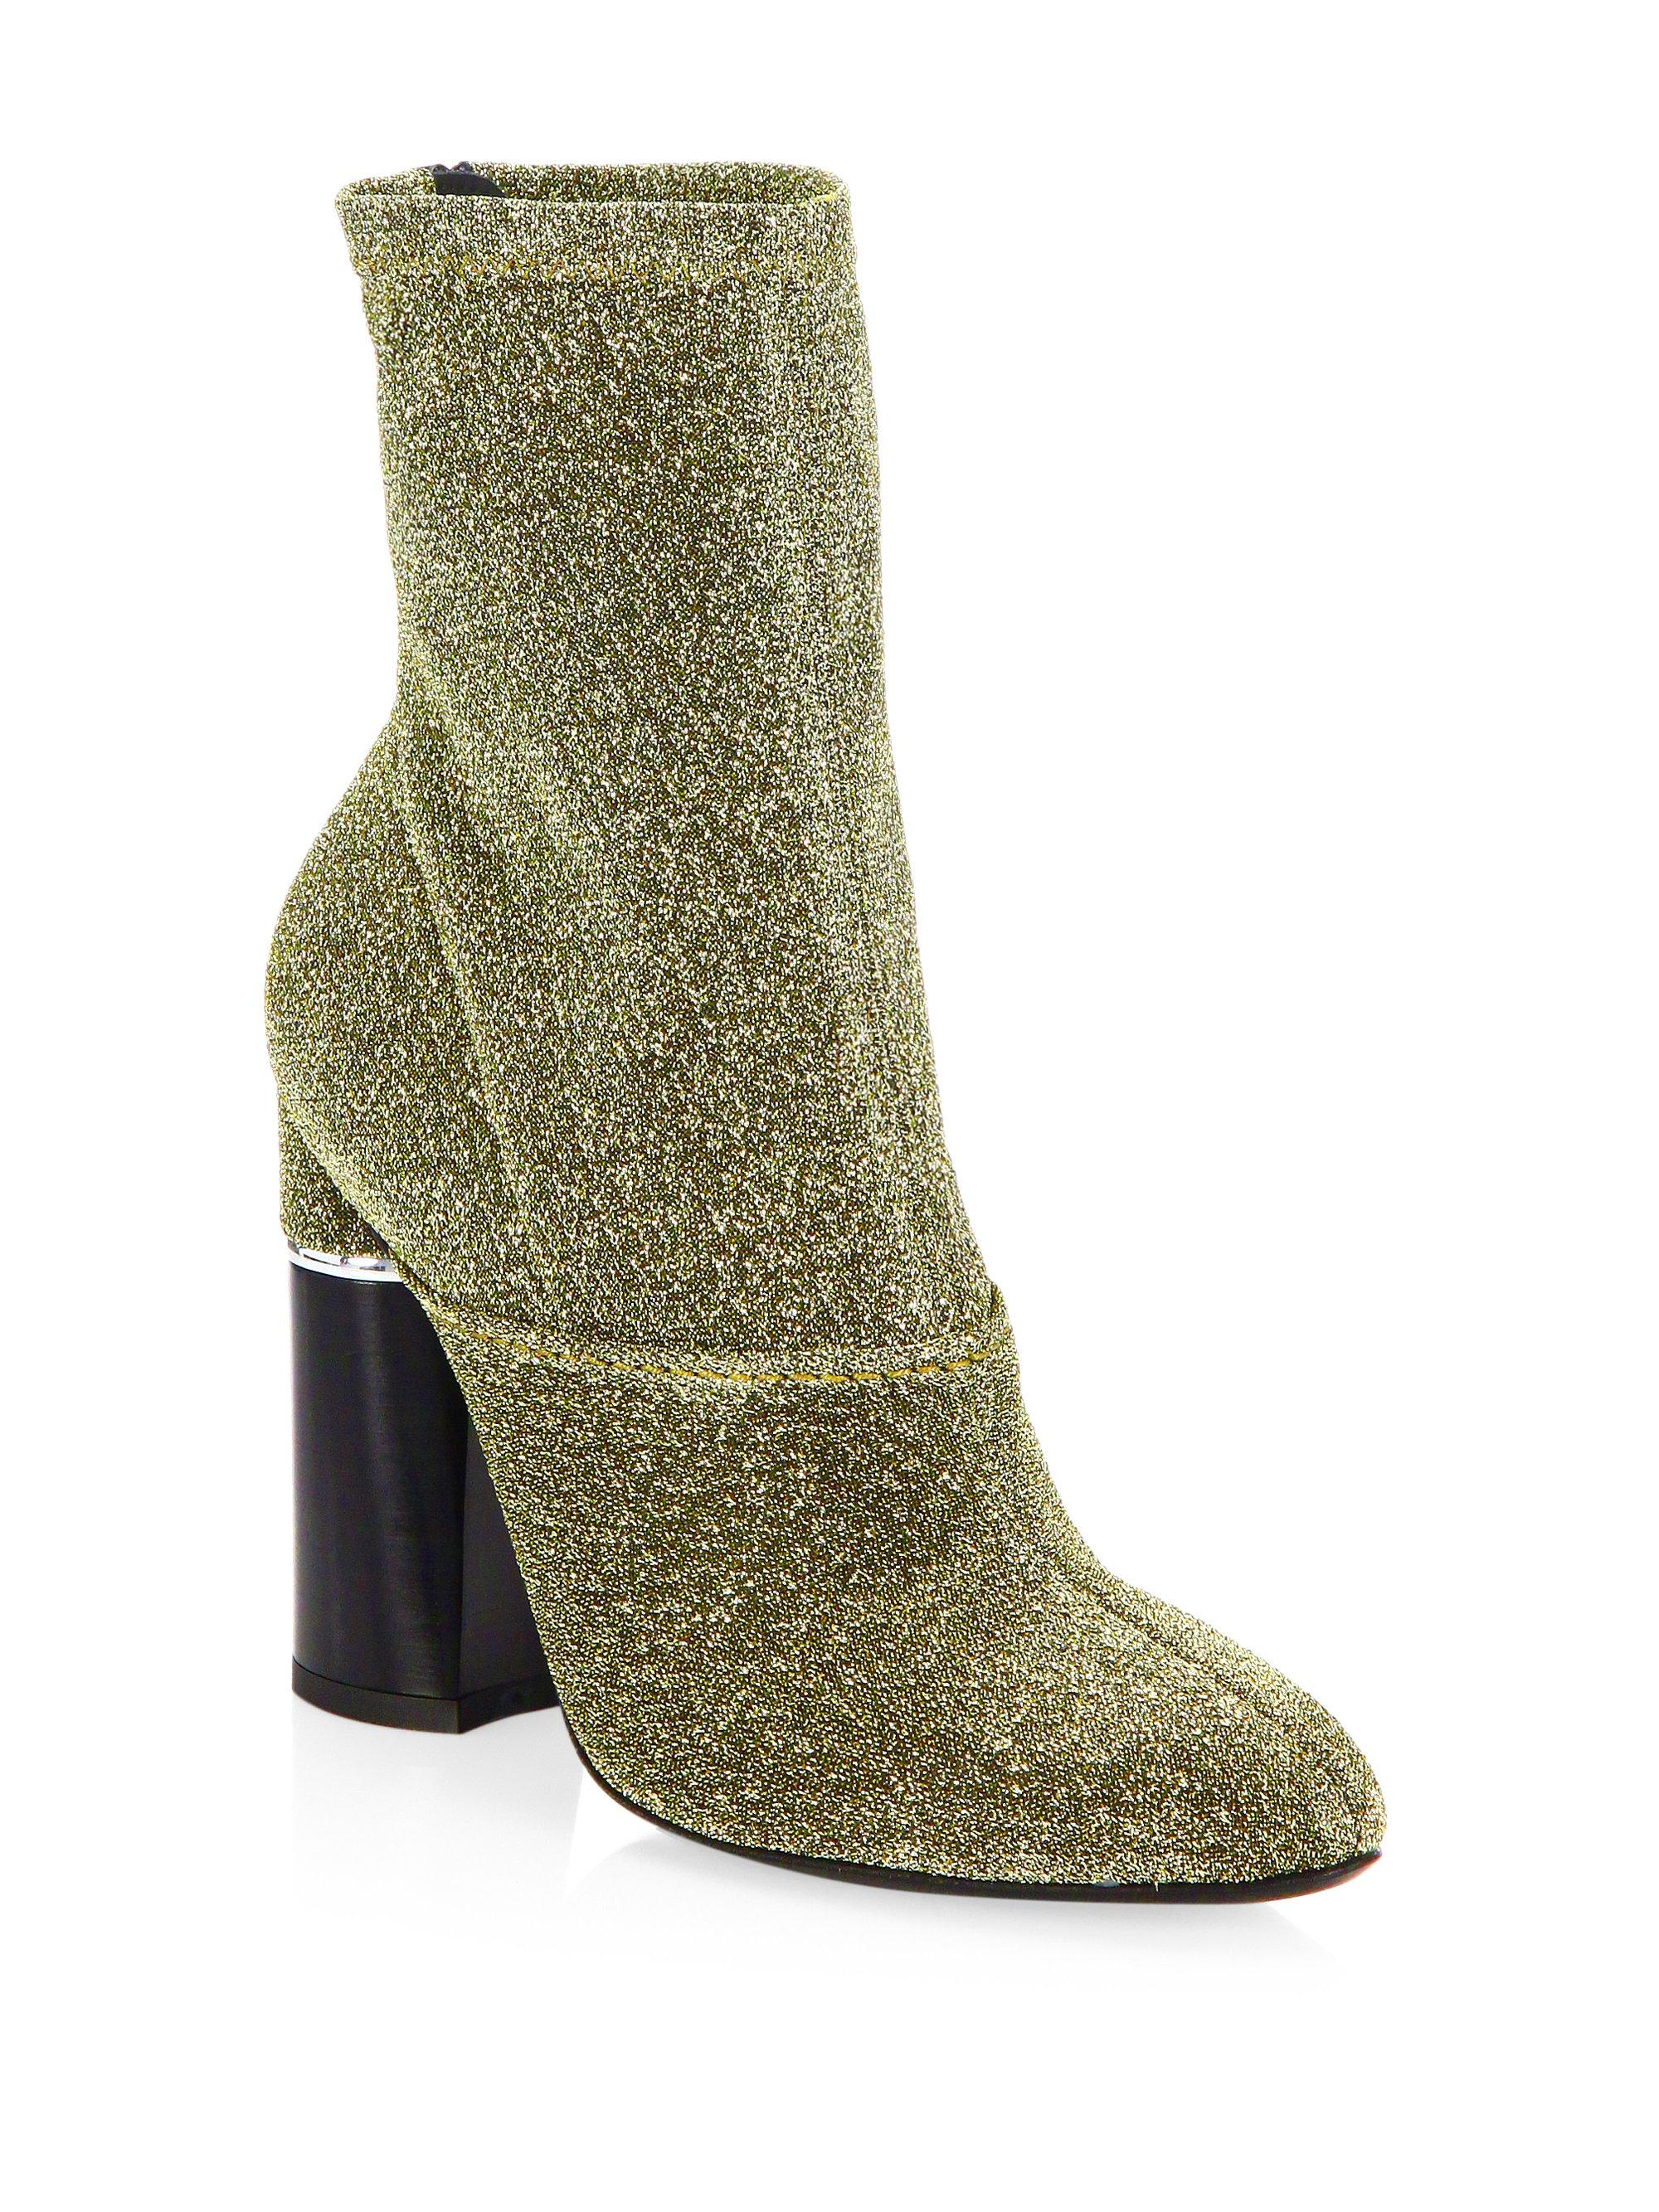 3.1 Phillip Lim Metallic Kyoto Ankle Boots cheap sale outlet store G51TW